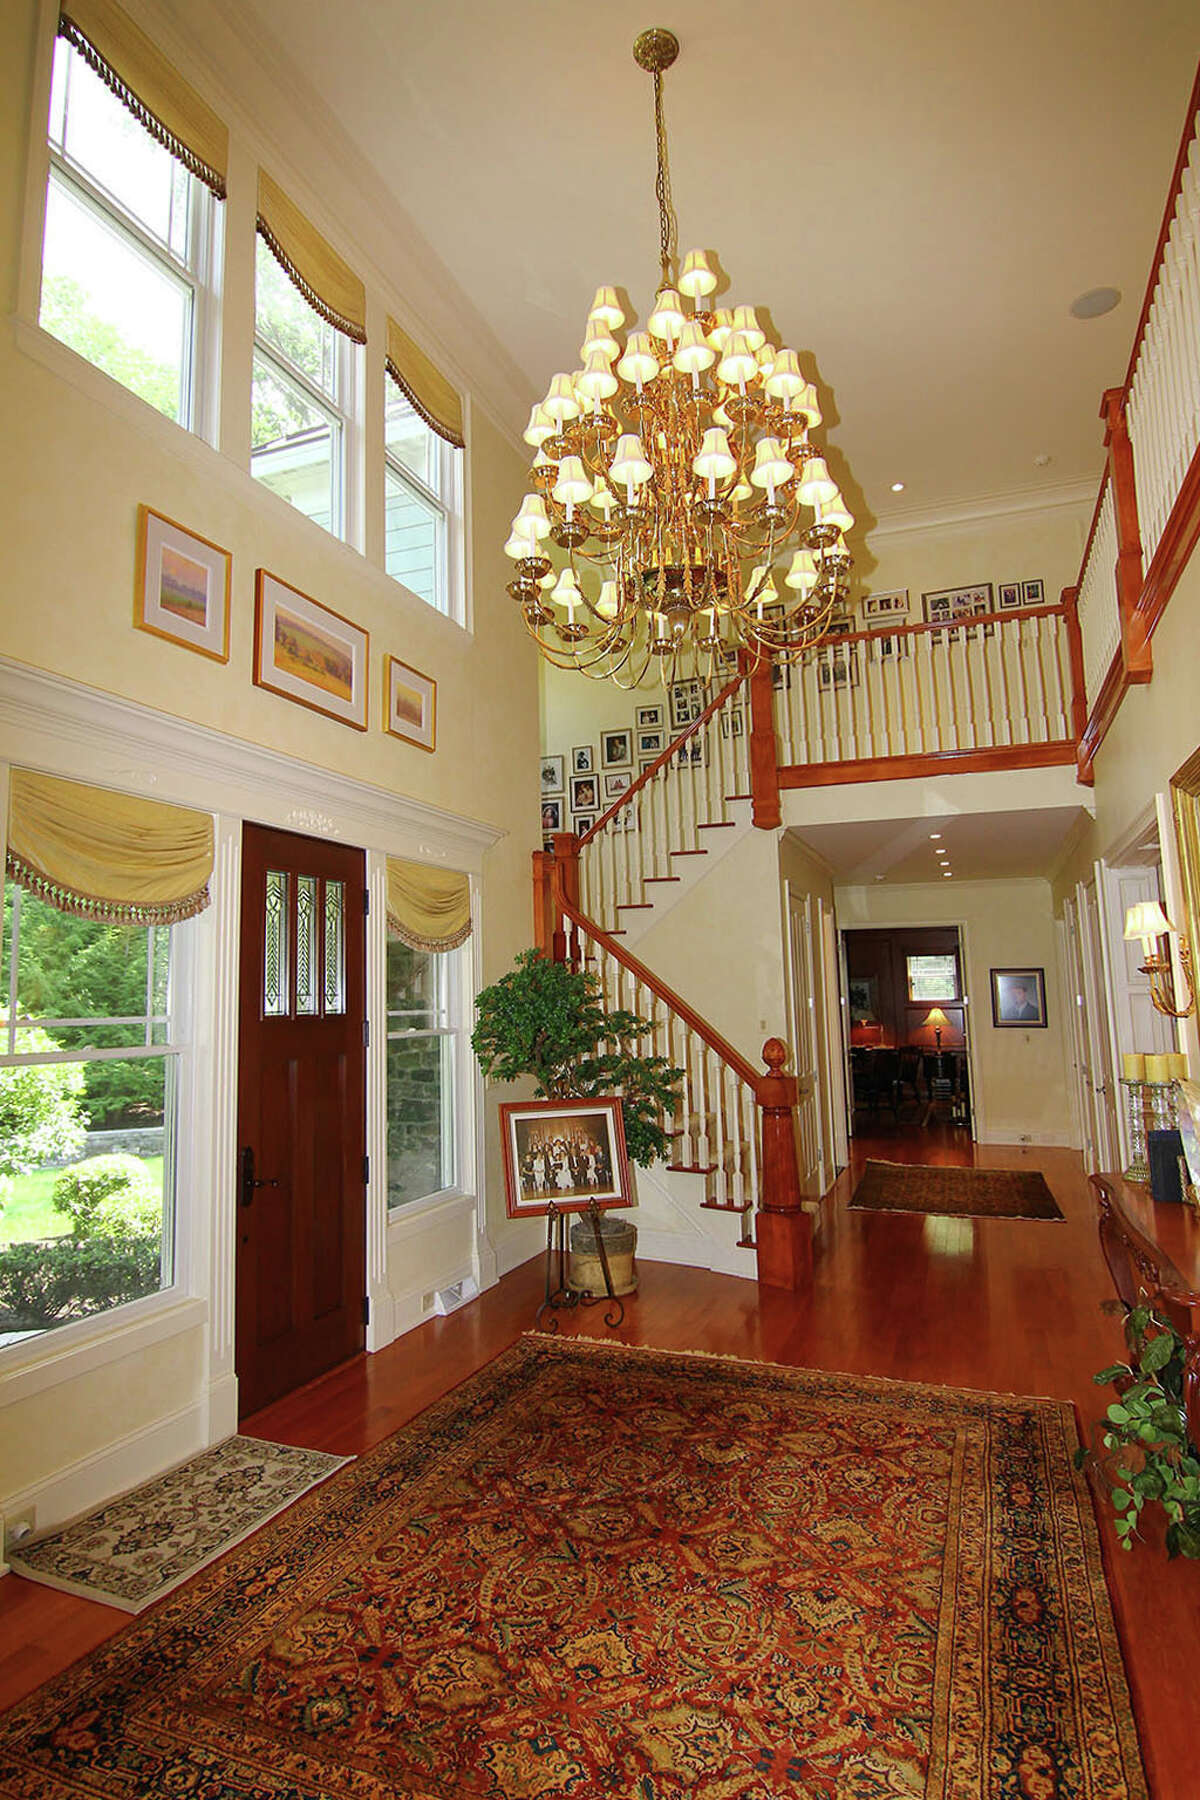 House of the Week: 31 Schuyler Hills Rd., Colonie | Realtor: Jeanne Fitzgerald at Coldwell Banker Prime Properties | Discuss: Talk about this house